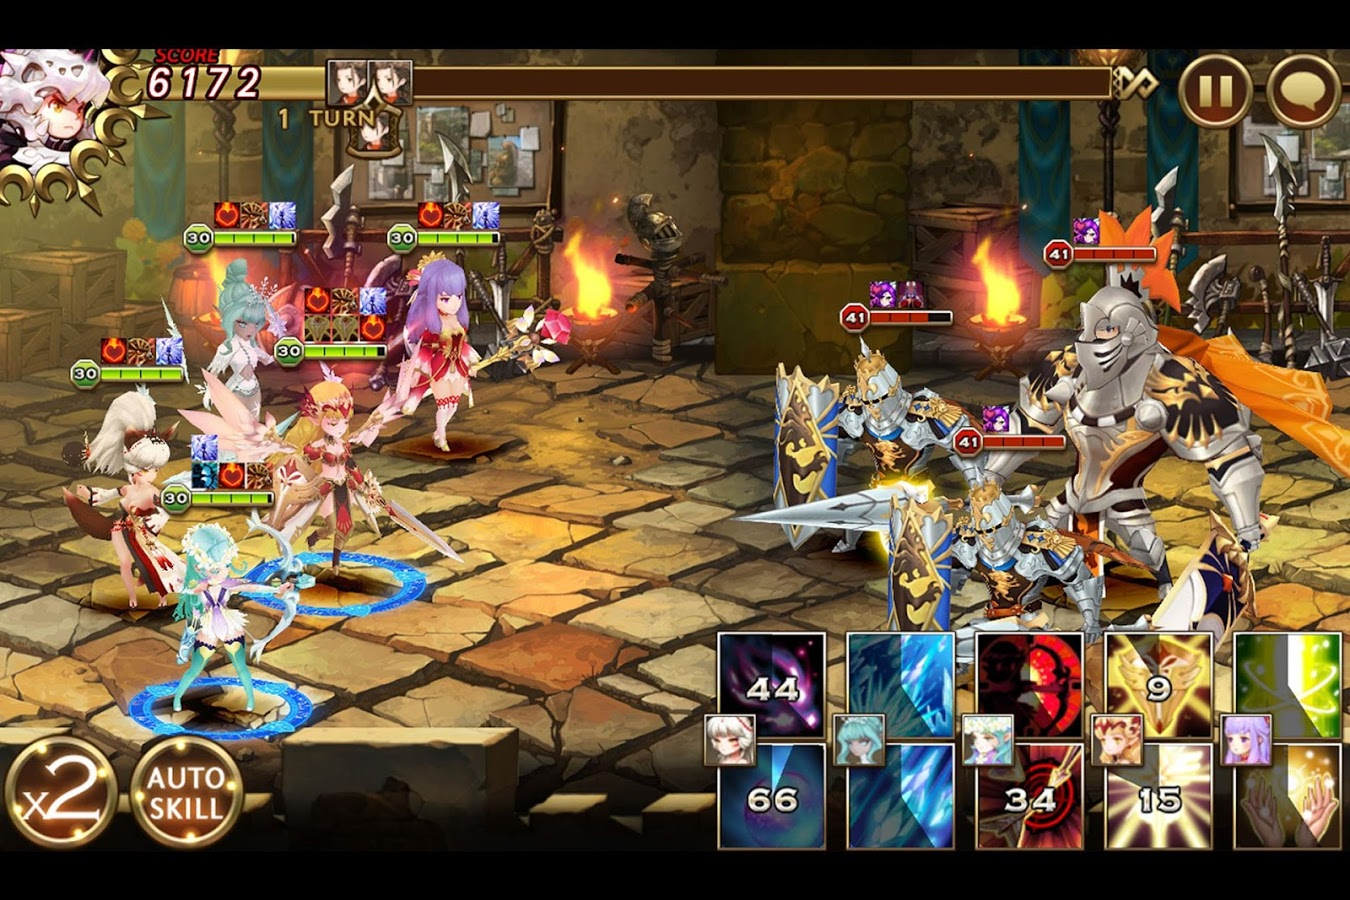 [Imagem: 7-knights-android-ios-battle-nox.jpg]